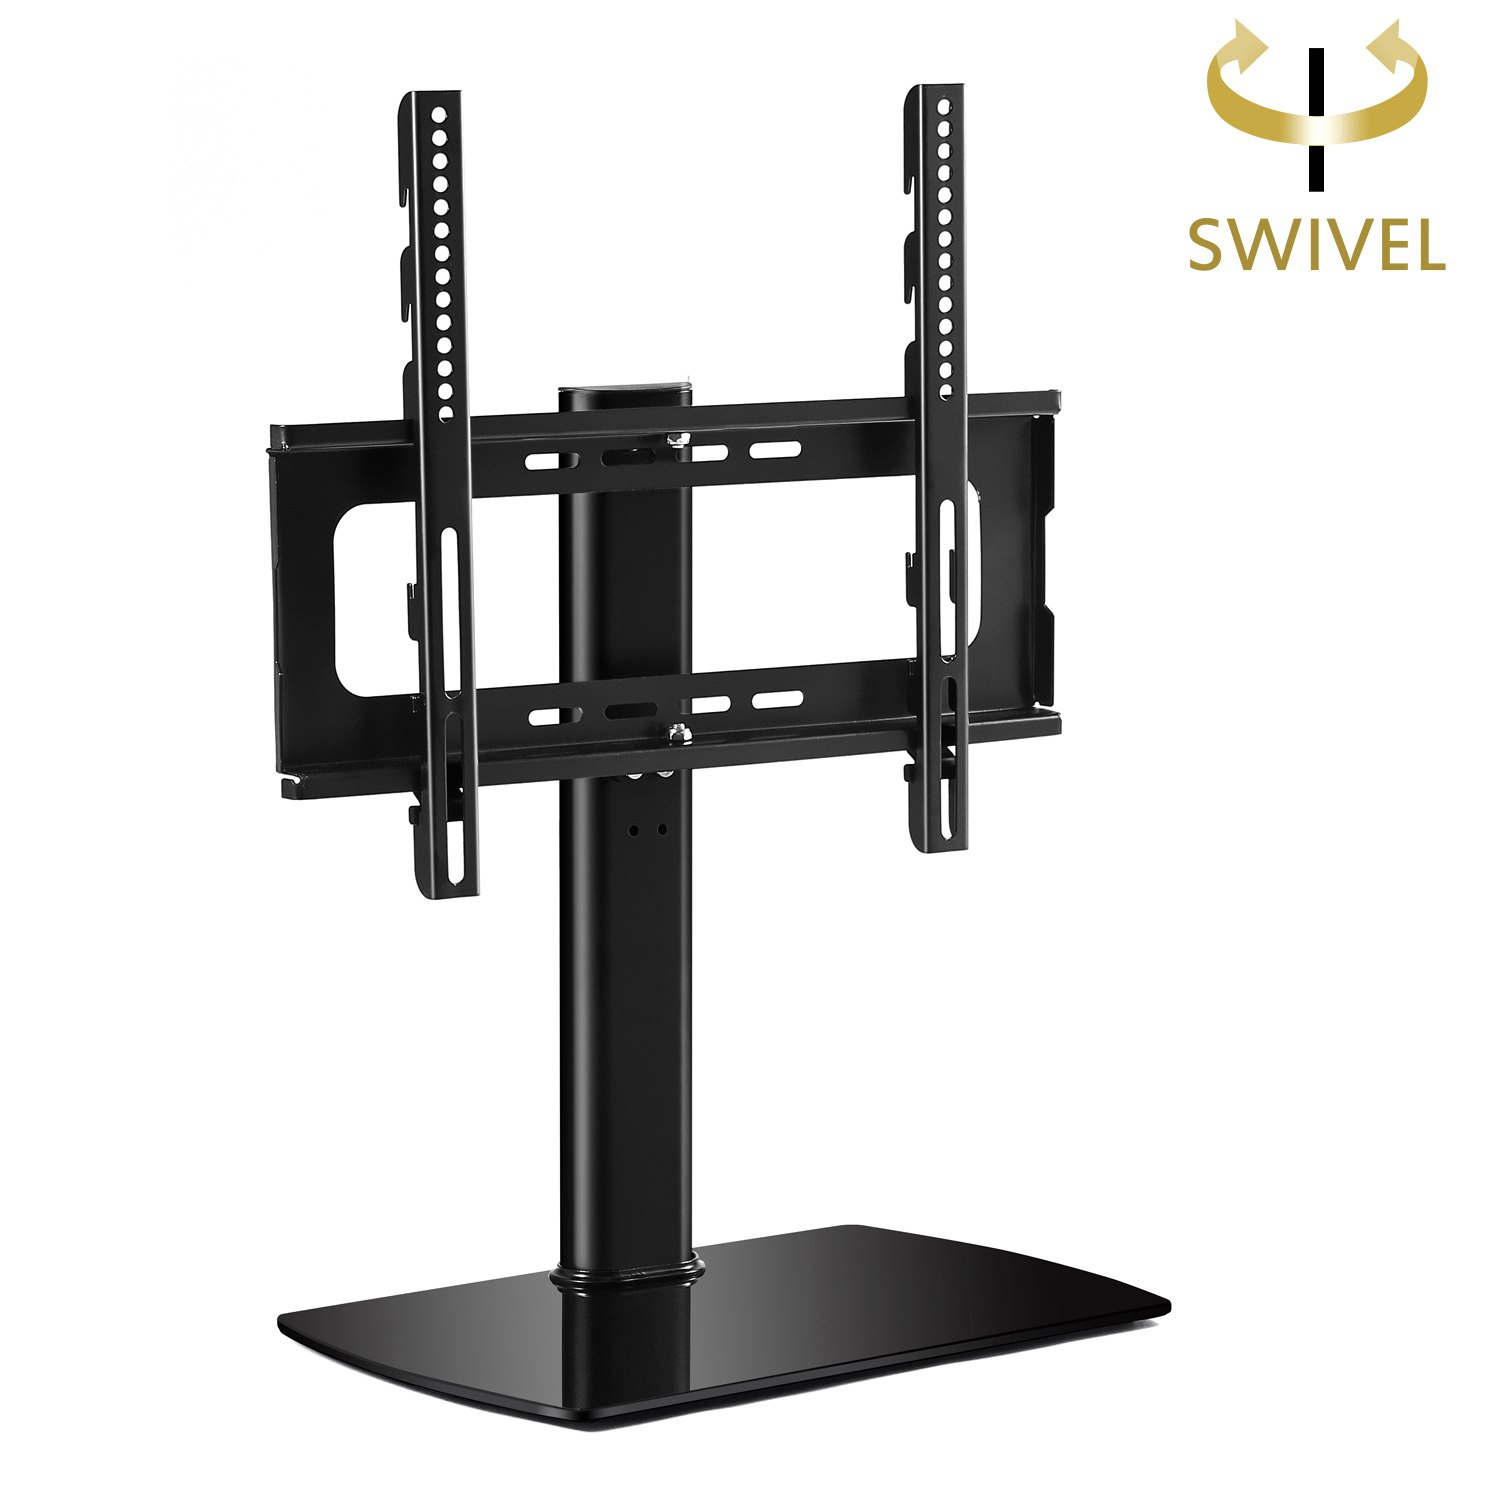 "RFIVER Universal Swivel Tabletop TV Stand with Mount for 32""-65"" LED,LCD and Plasma Flat Screen TVs with... by Rfiver"